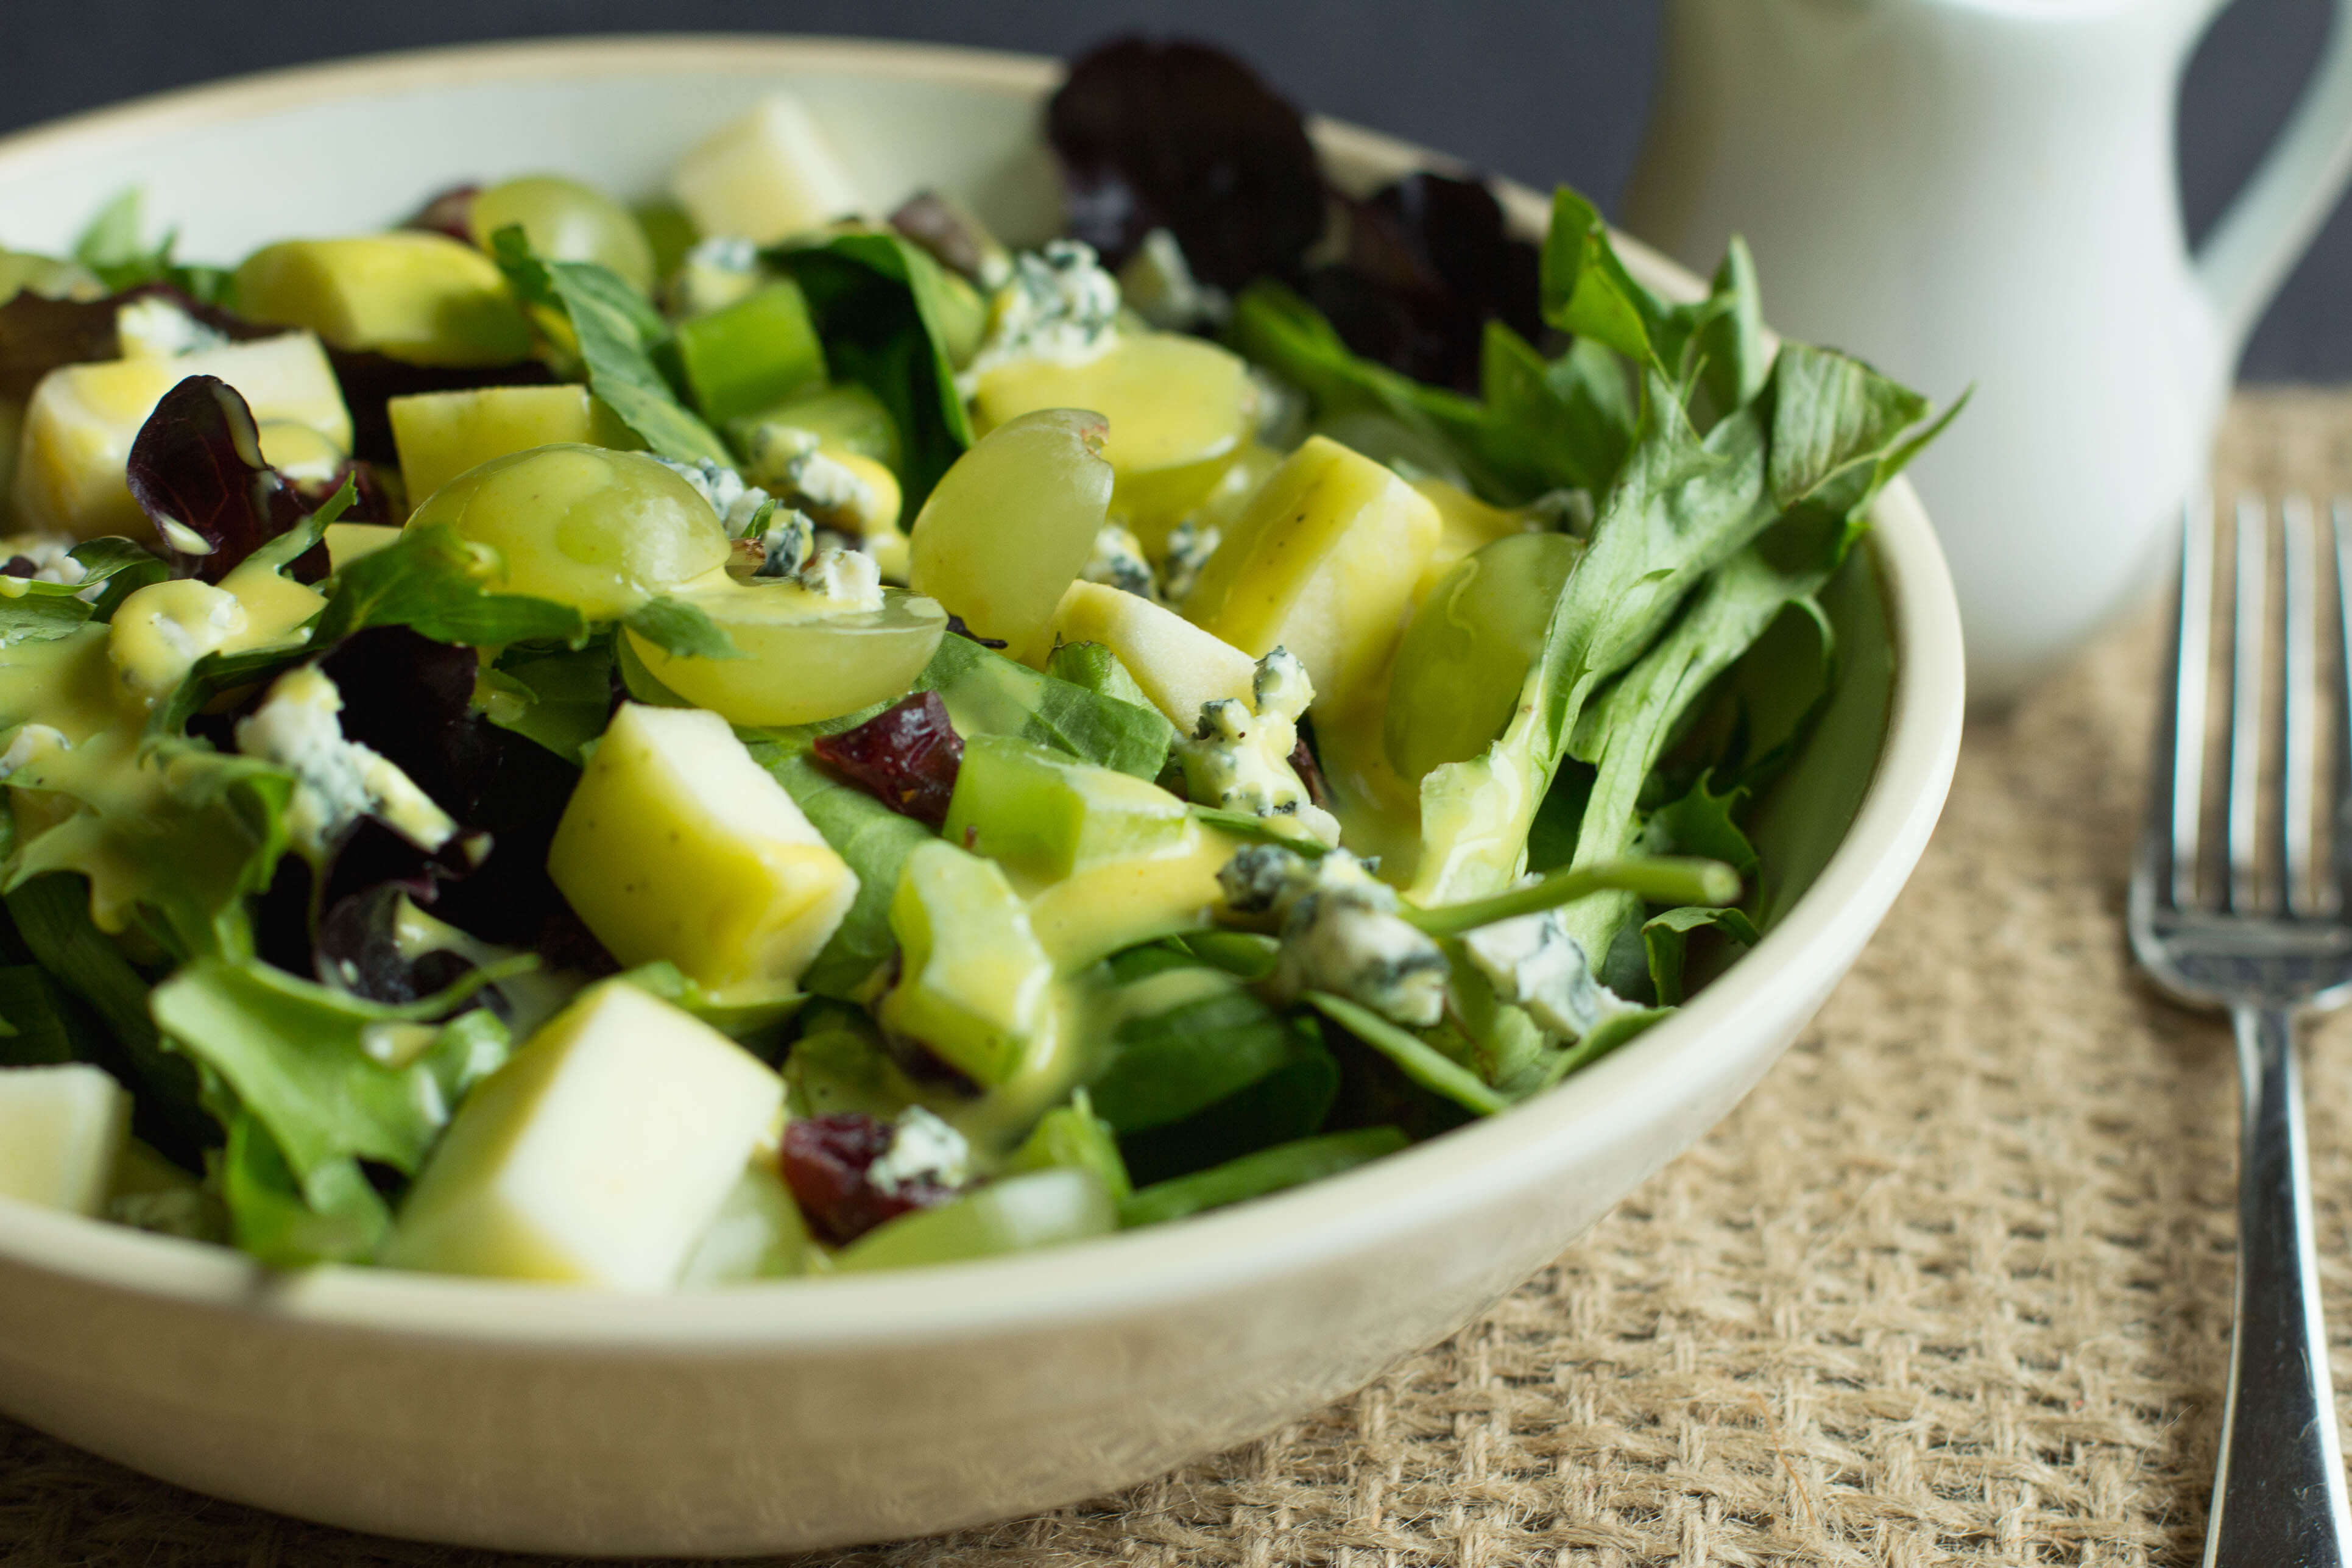 I am a big fan of serving a green salad with dinner. Its a great way to eat dark leafy greens, and maybe some other fruits and veggies. I love to use new ingredients to change things up.